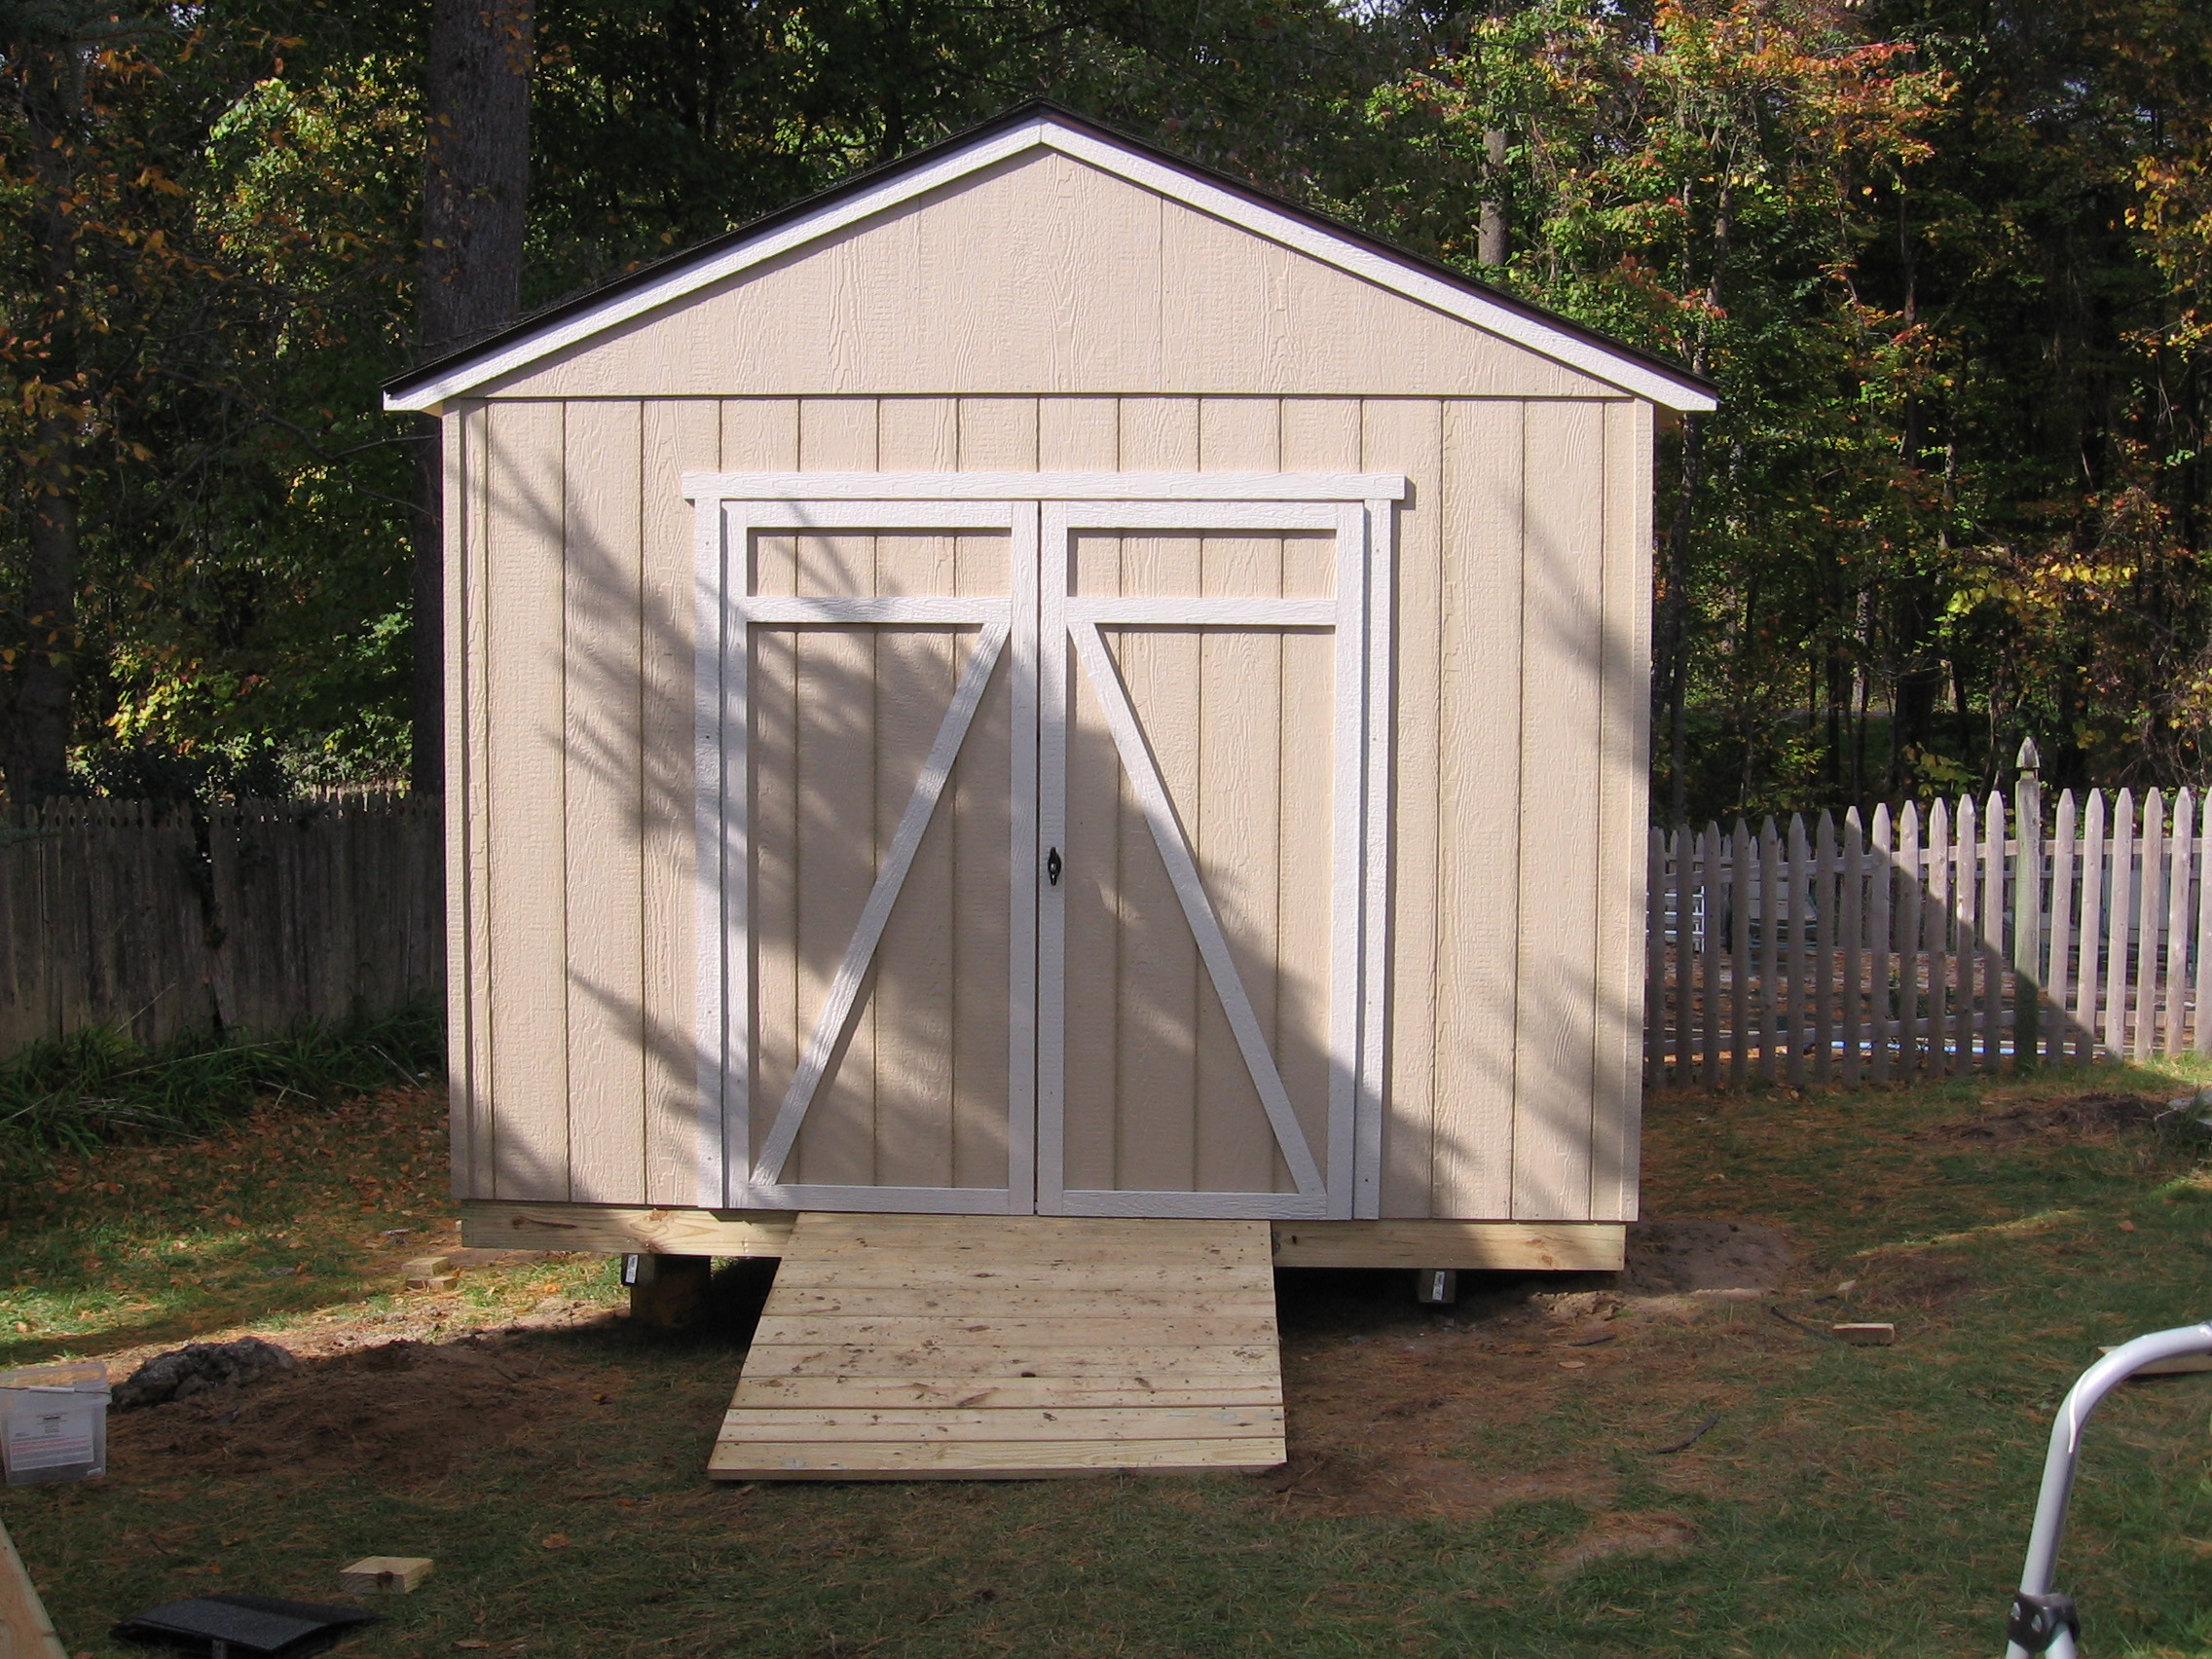 10 x 8 pent shed plans menards tsp for Barn construction kits